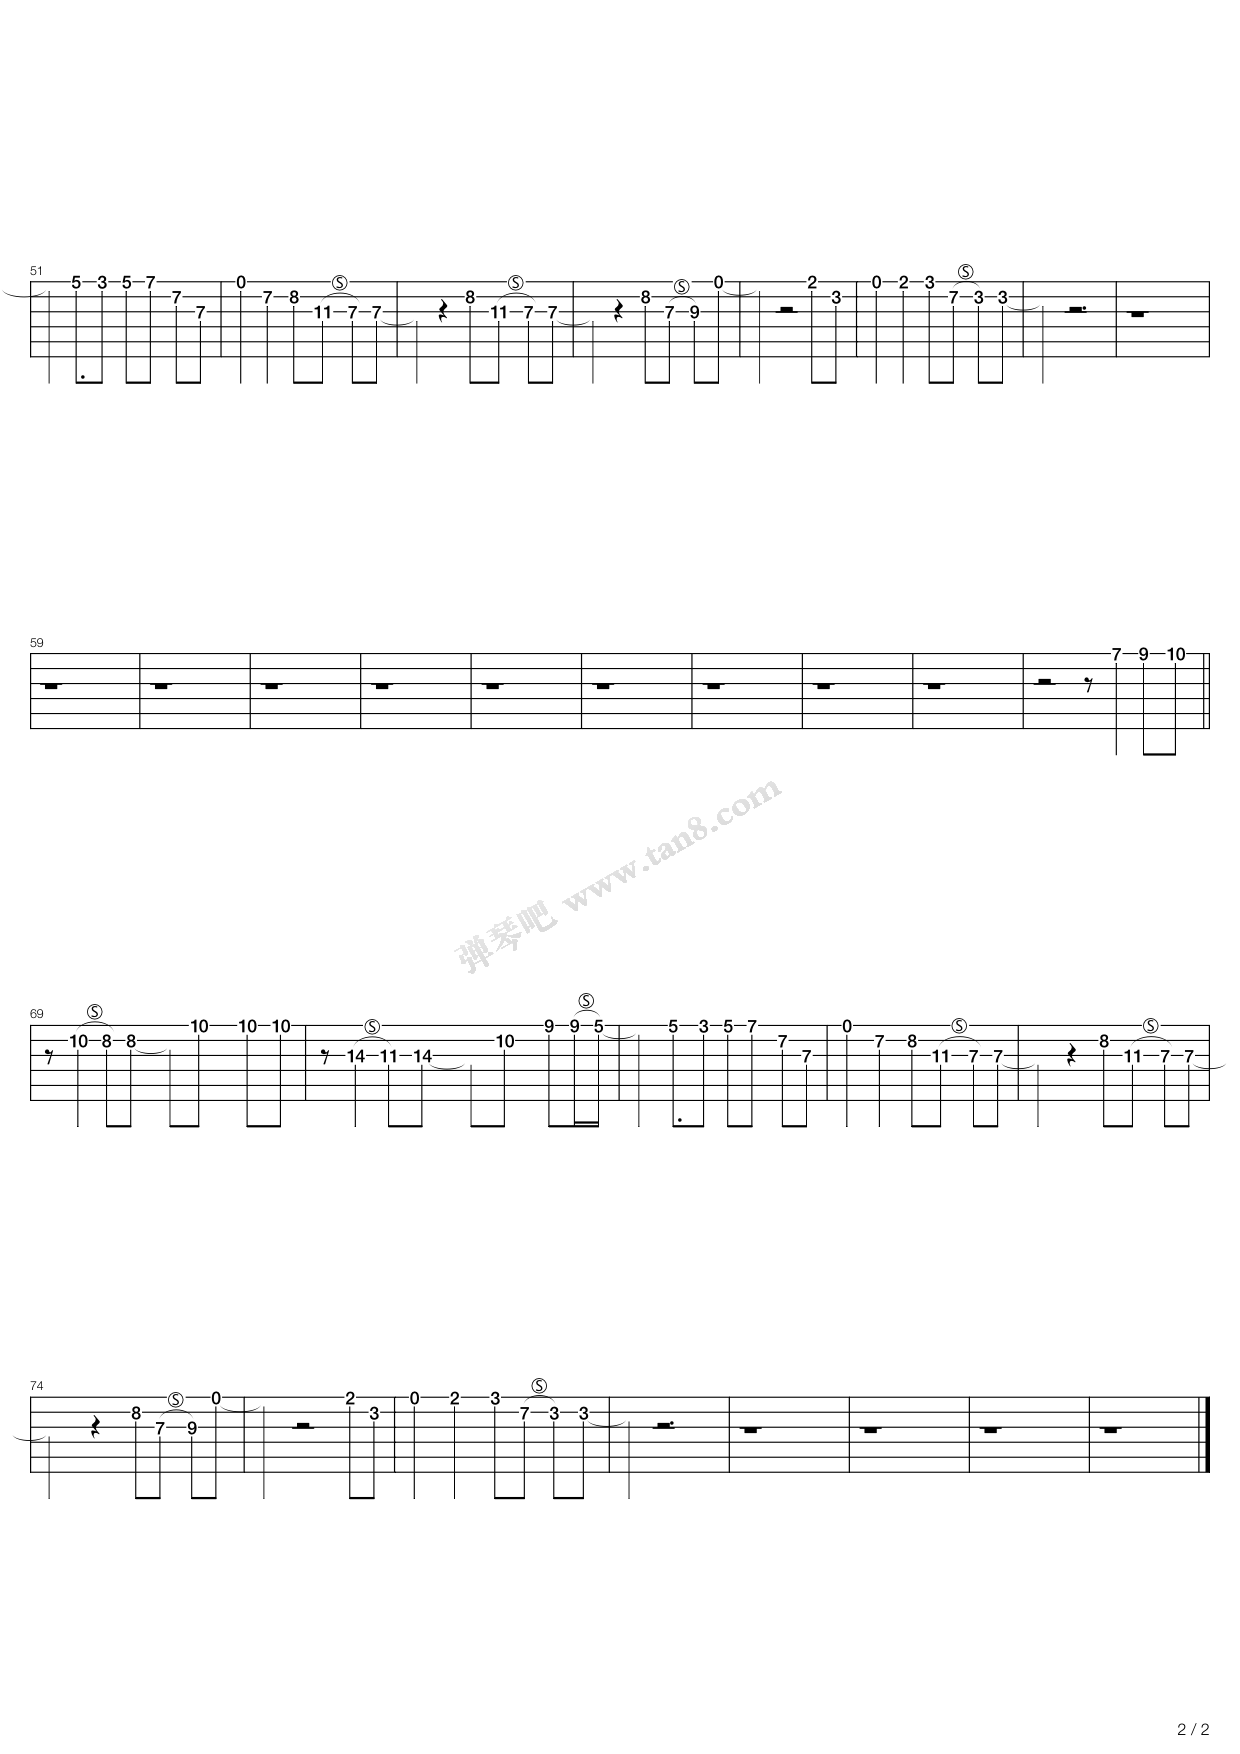 Down To Earth by Justin Bieber Guitar Tabs Chords Sheet